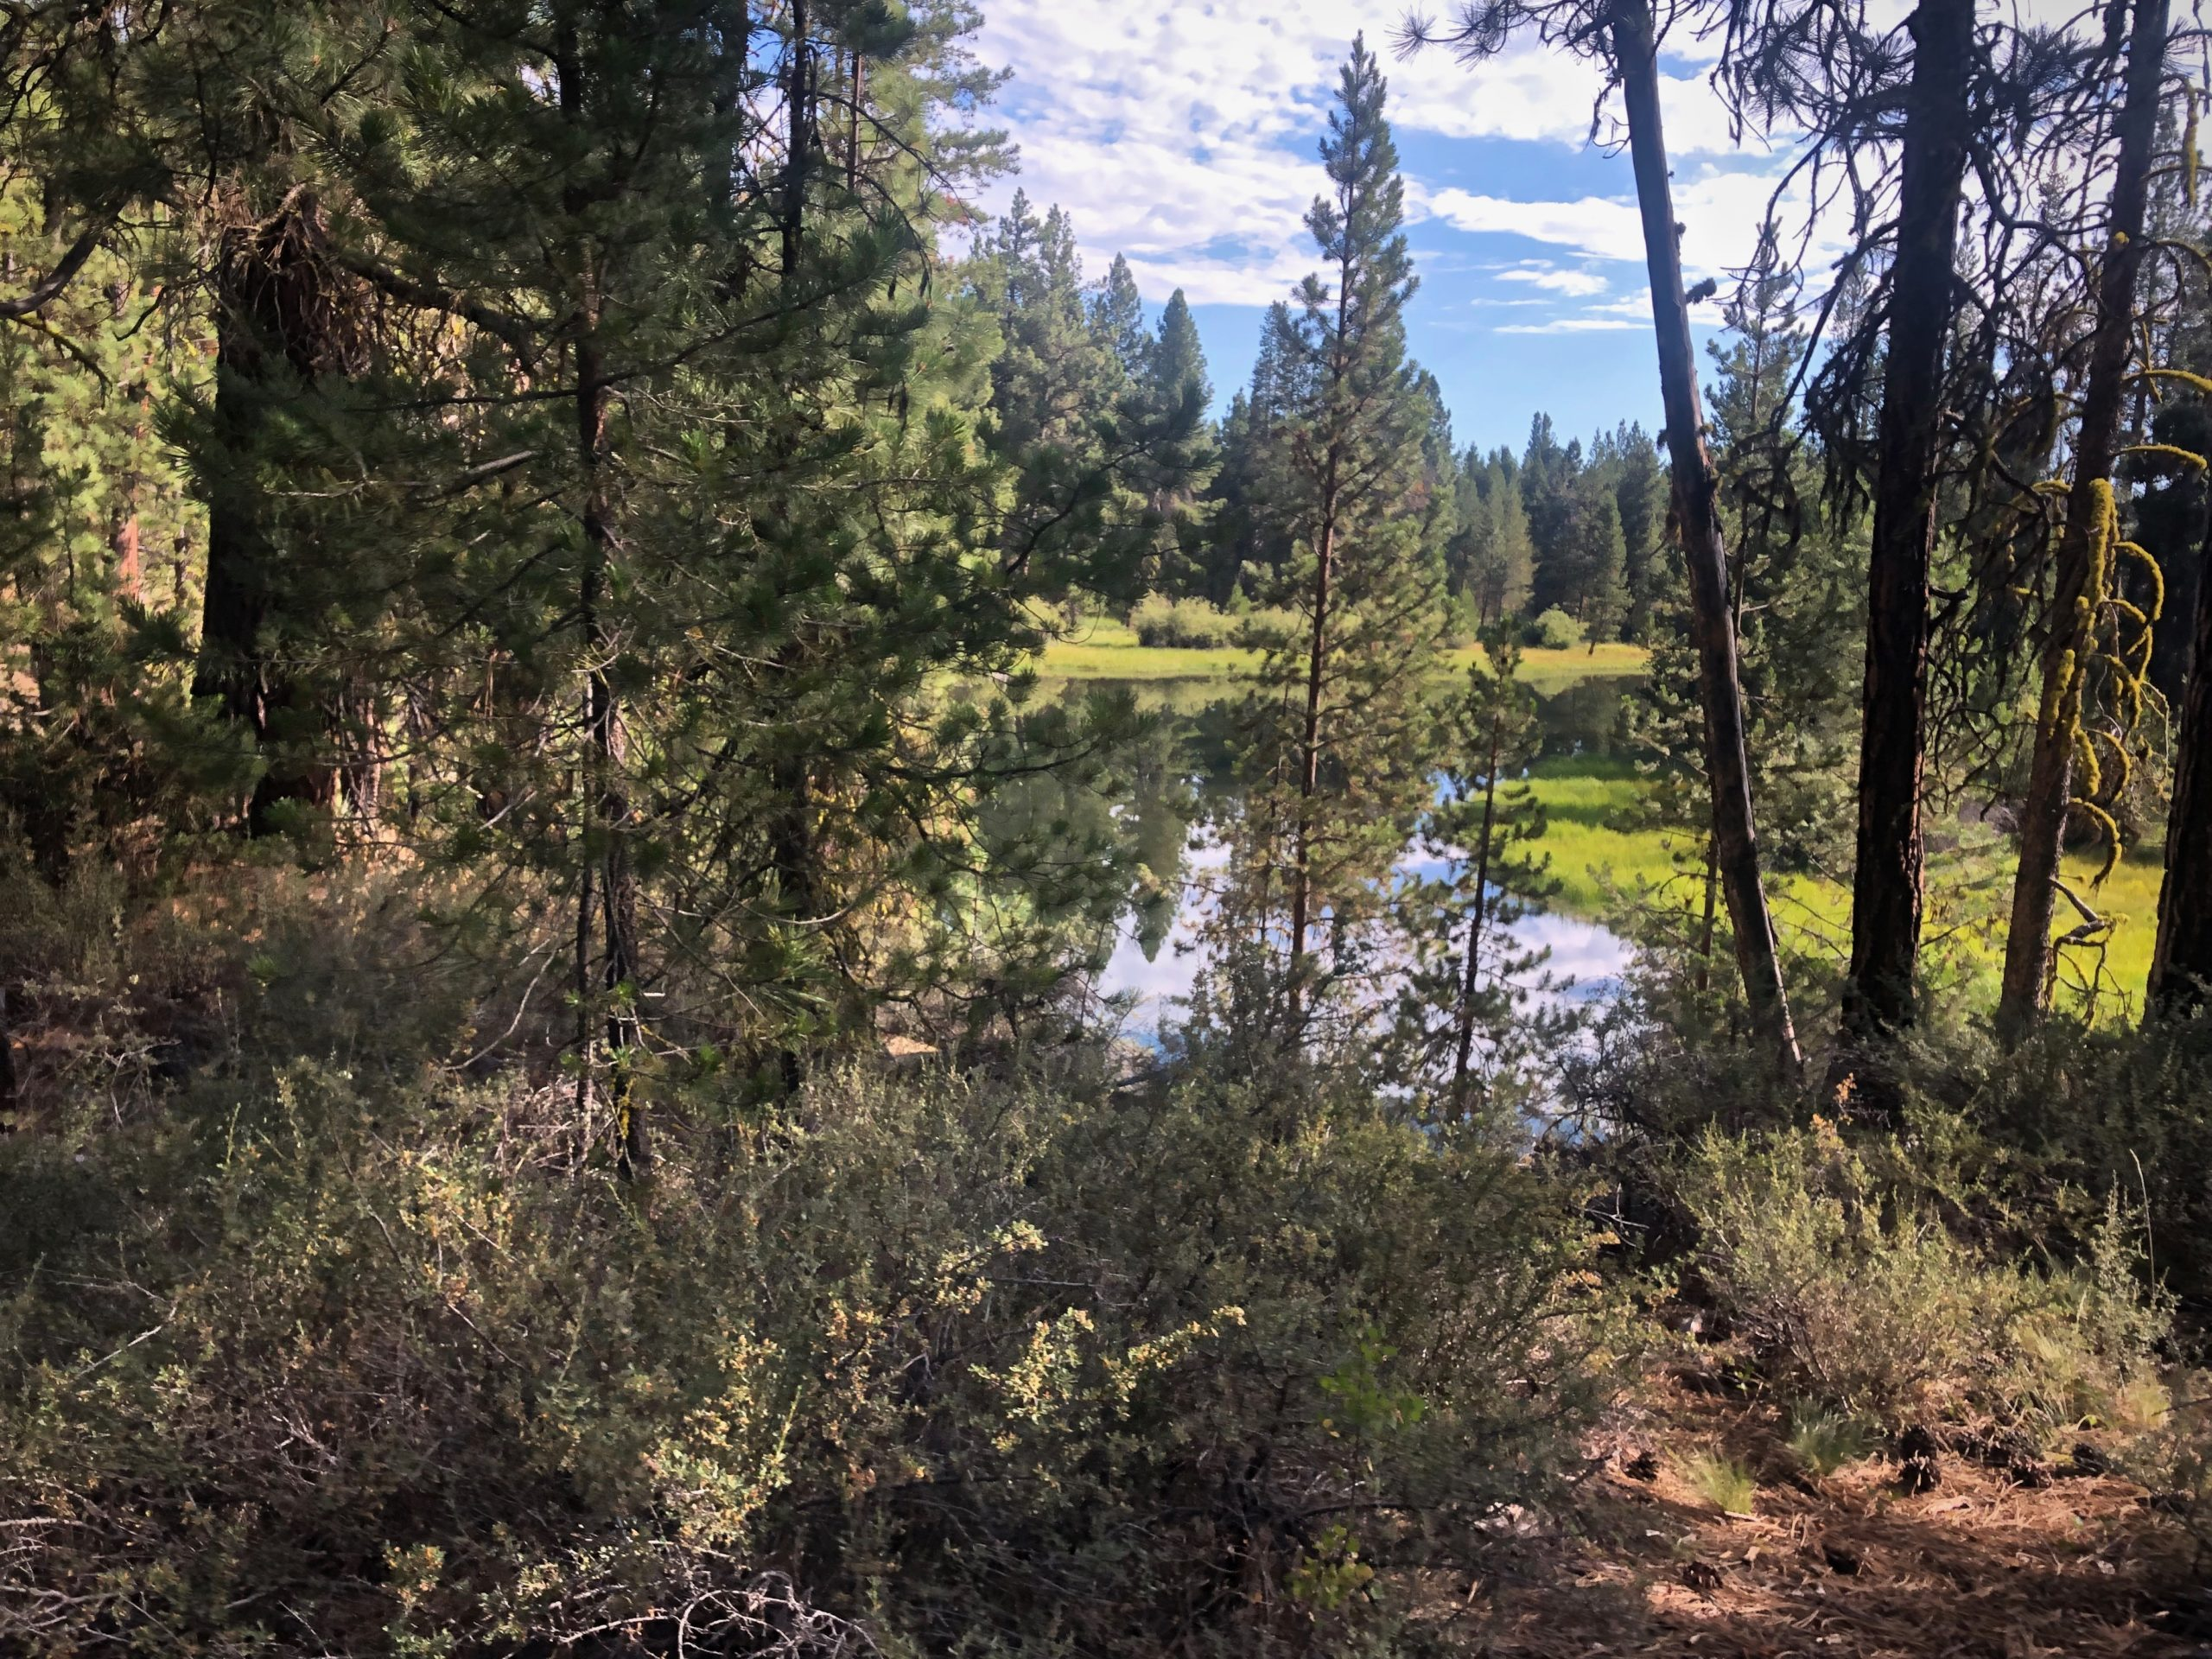 The Deschutes river at Dead Slough in LaPine State park near Bend, Oregon.